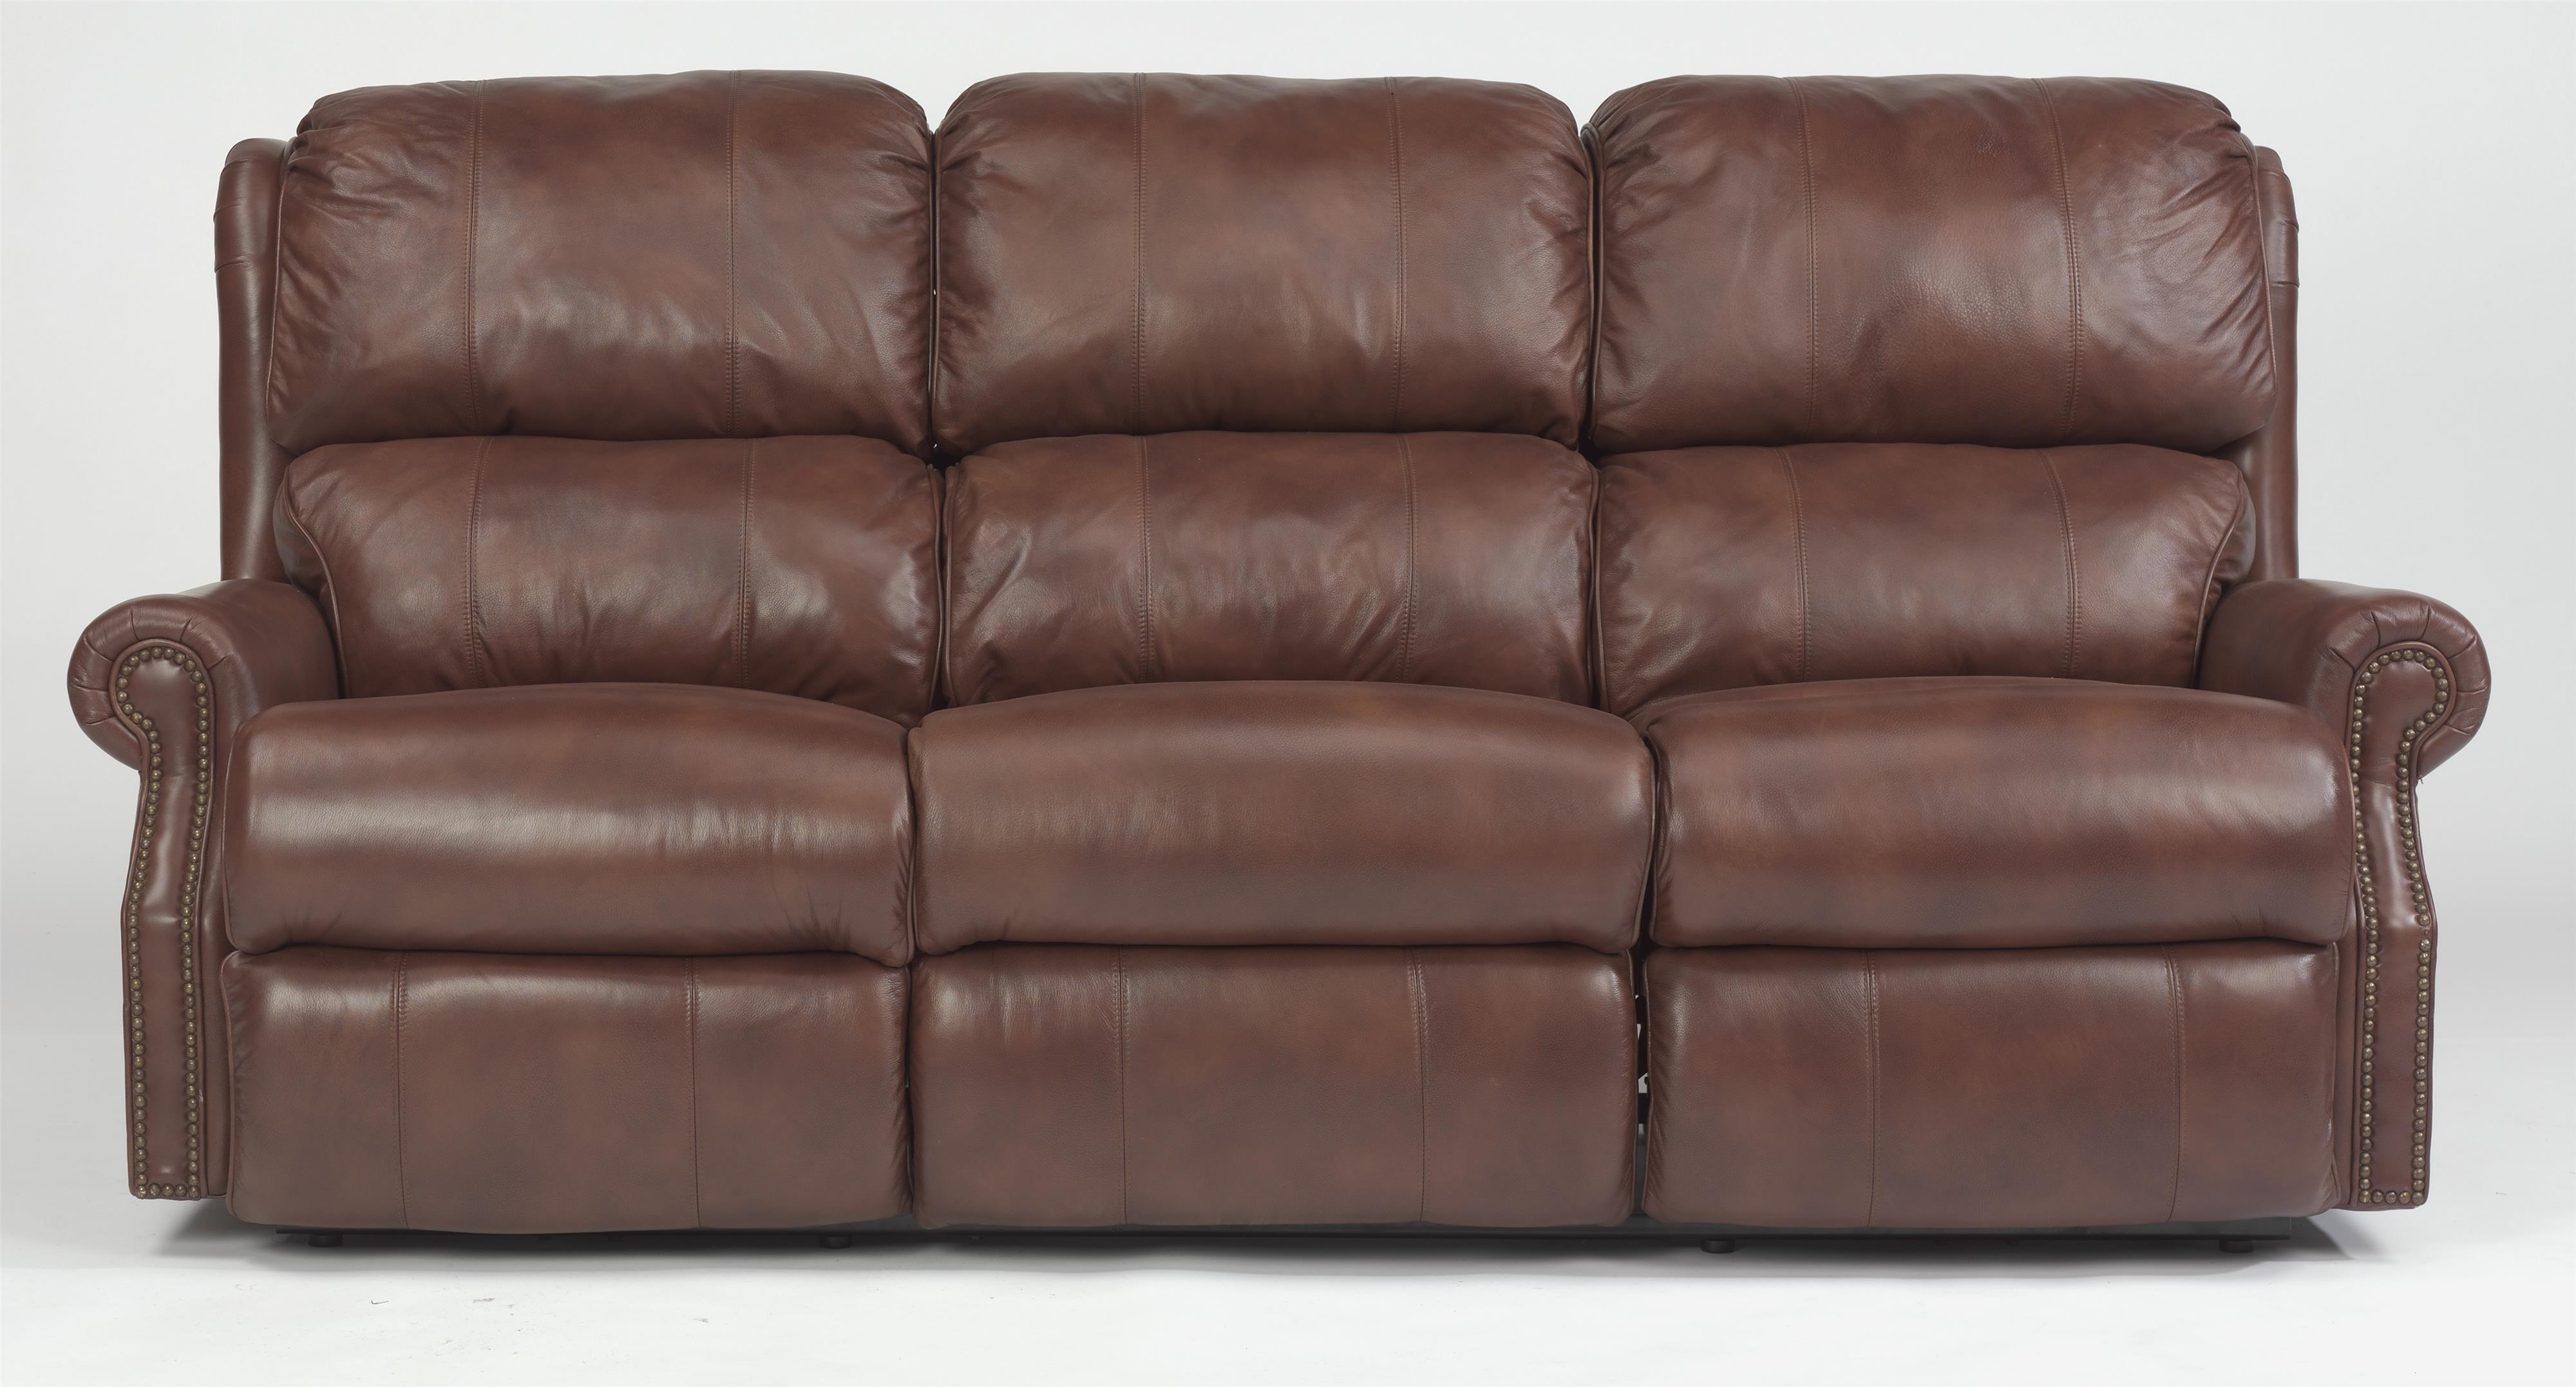 Flexsteel Latitudes - Comfort Zone Power Reclining Sofa - Item Number: 1227-62P-LSP-73